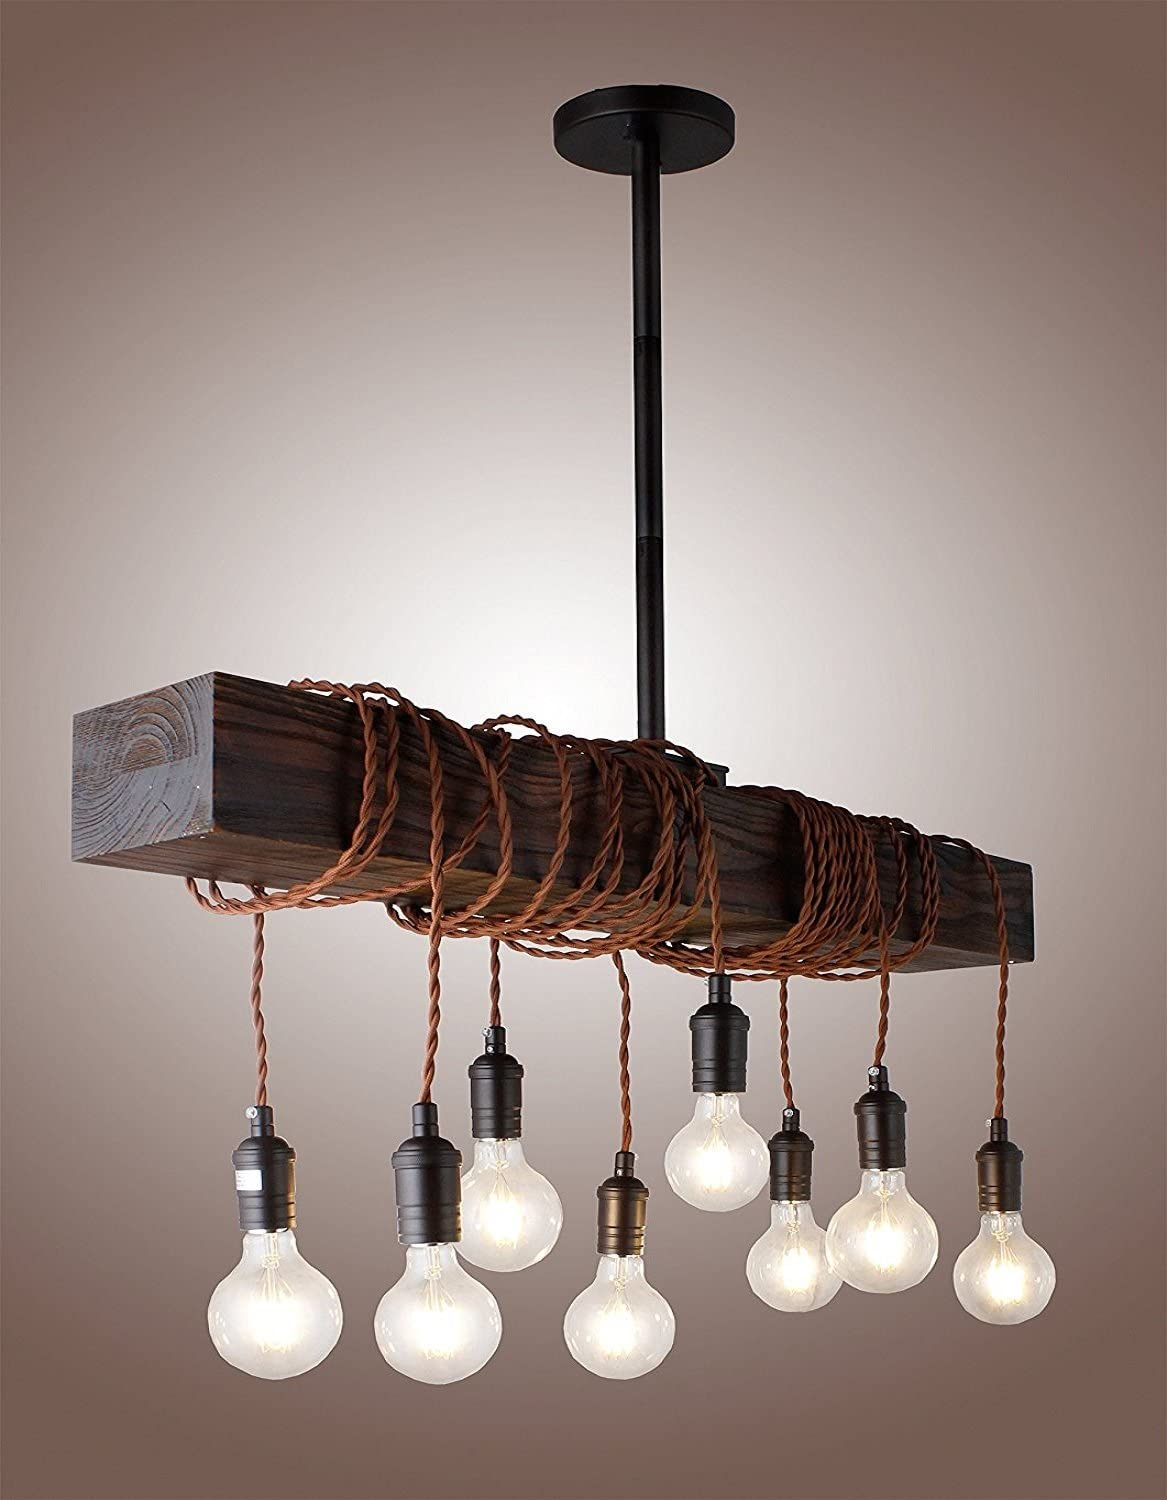 32 Vintage Rustic Wood Beam Pendant Light Antique Decor Chandelier – Perfect for Kitchen, Bar, Farmhouse, Industrial, Island, Billiard and Edison Bulb Decor. Natural Reclaimed Rustic Wooden Light